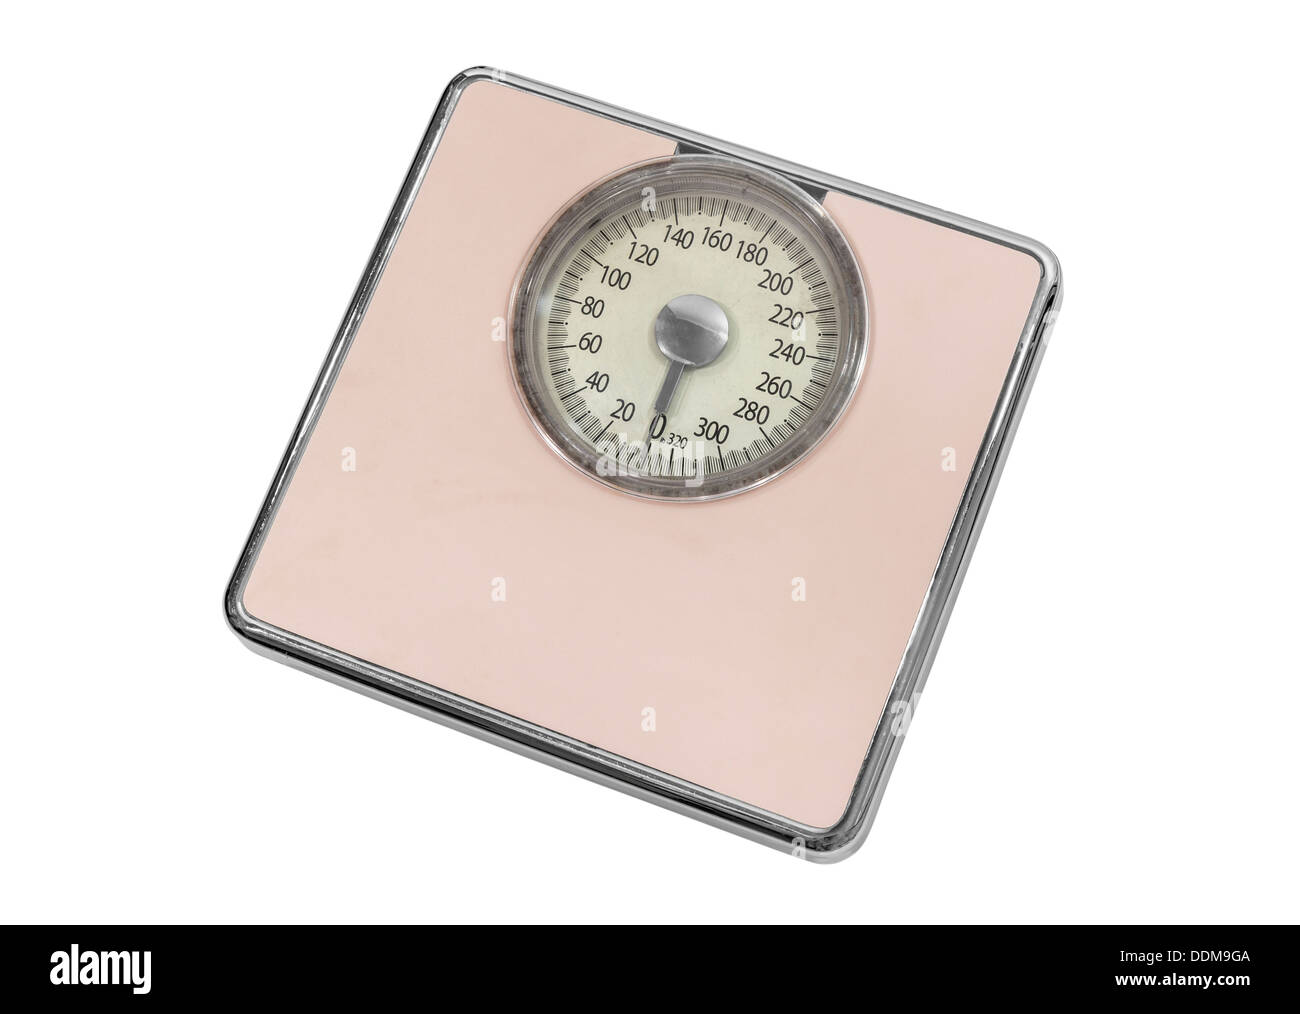 Vintage pink home weight scale isolated with clipping path. - Stock Image